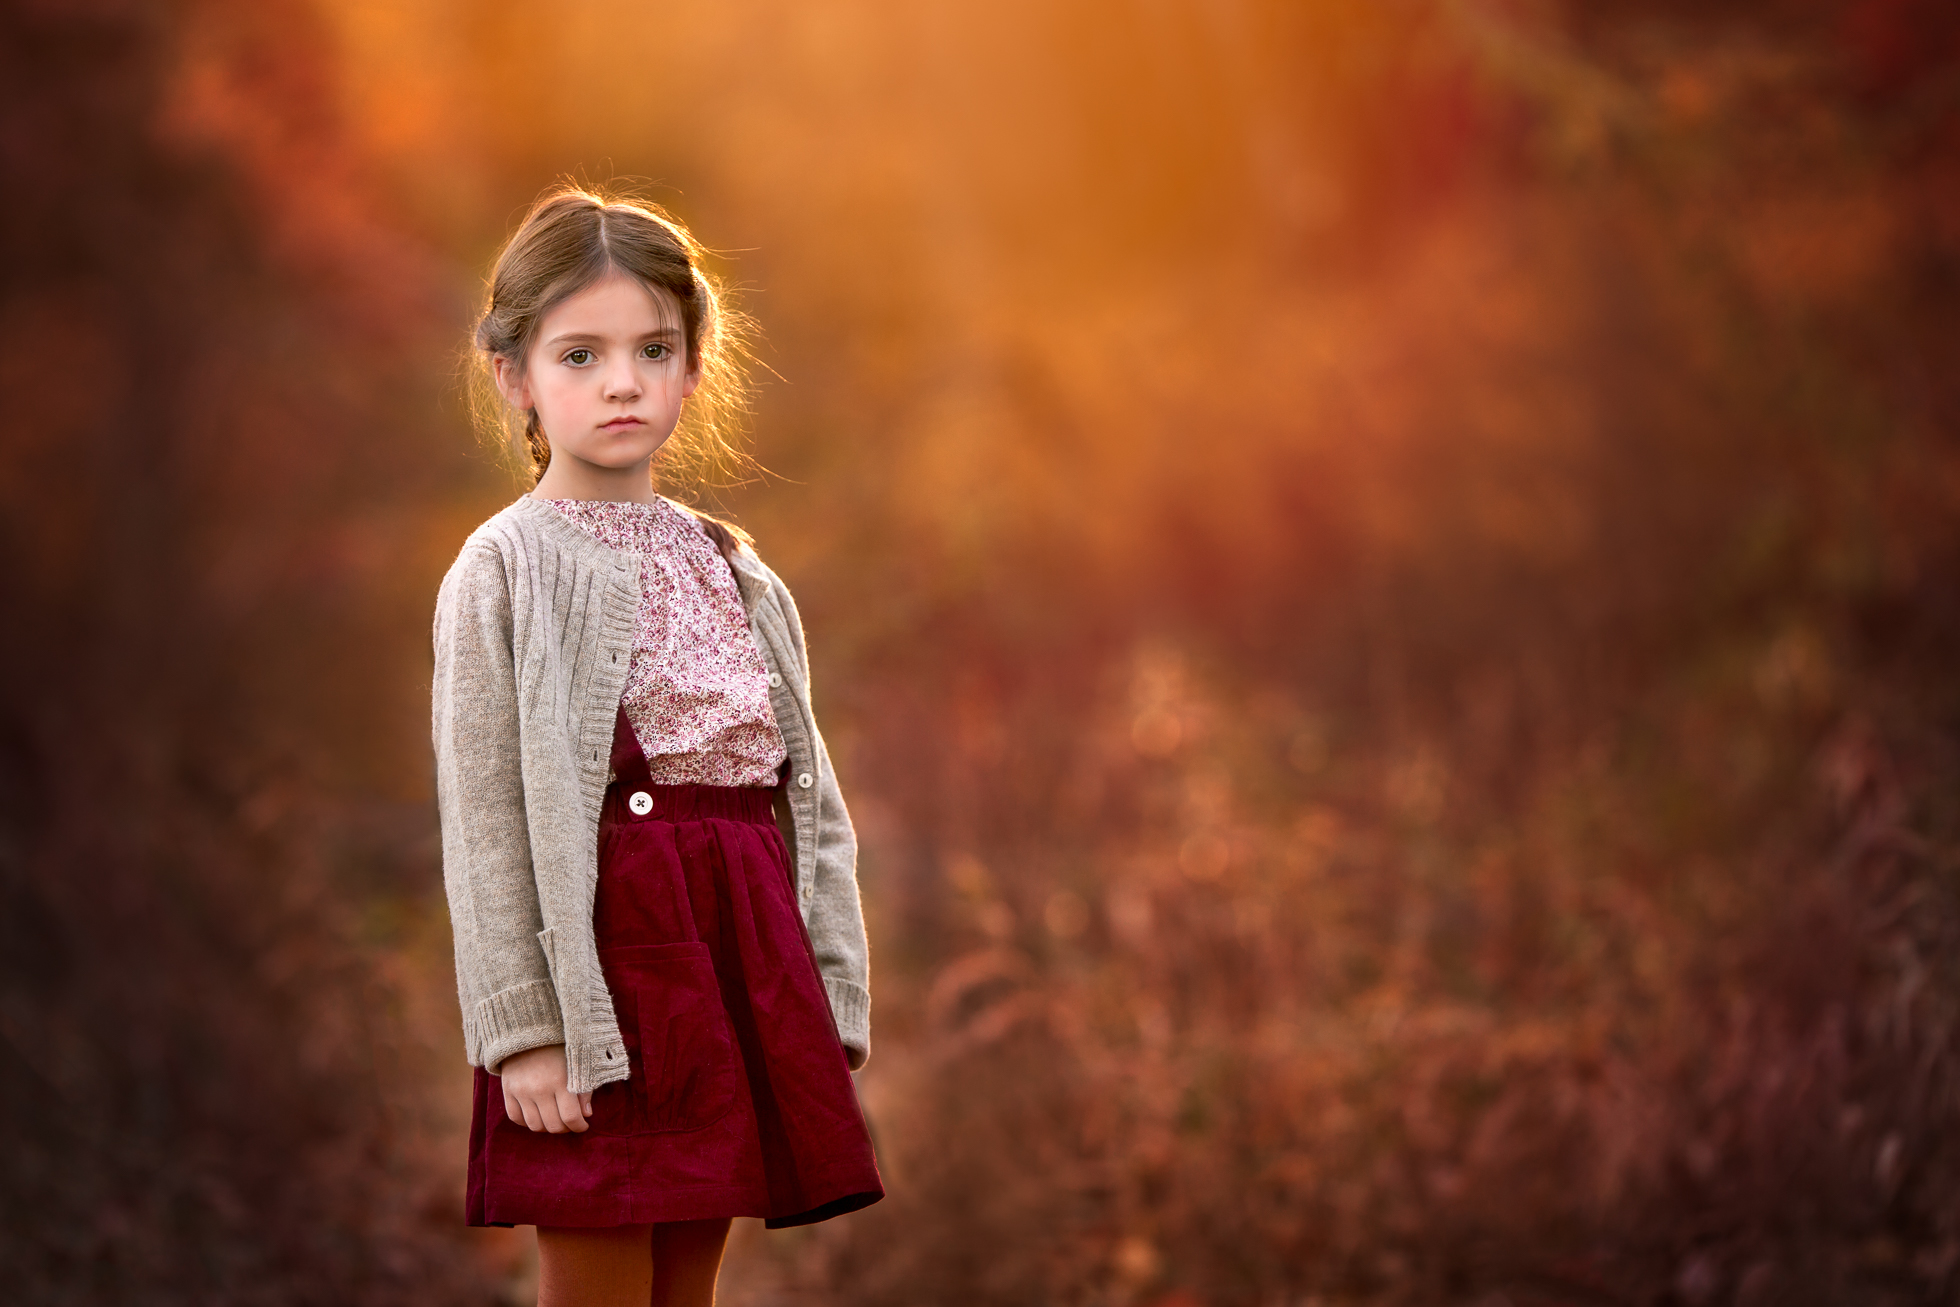 best_child_photographer_maryland_child_portraiture_northern_virginia_fine_art_portraiture_mclean_VA_photographer-5.jpg